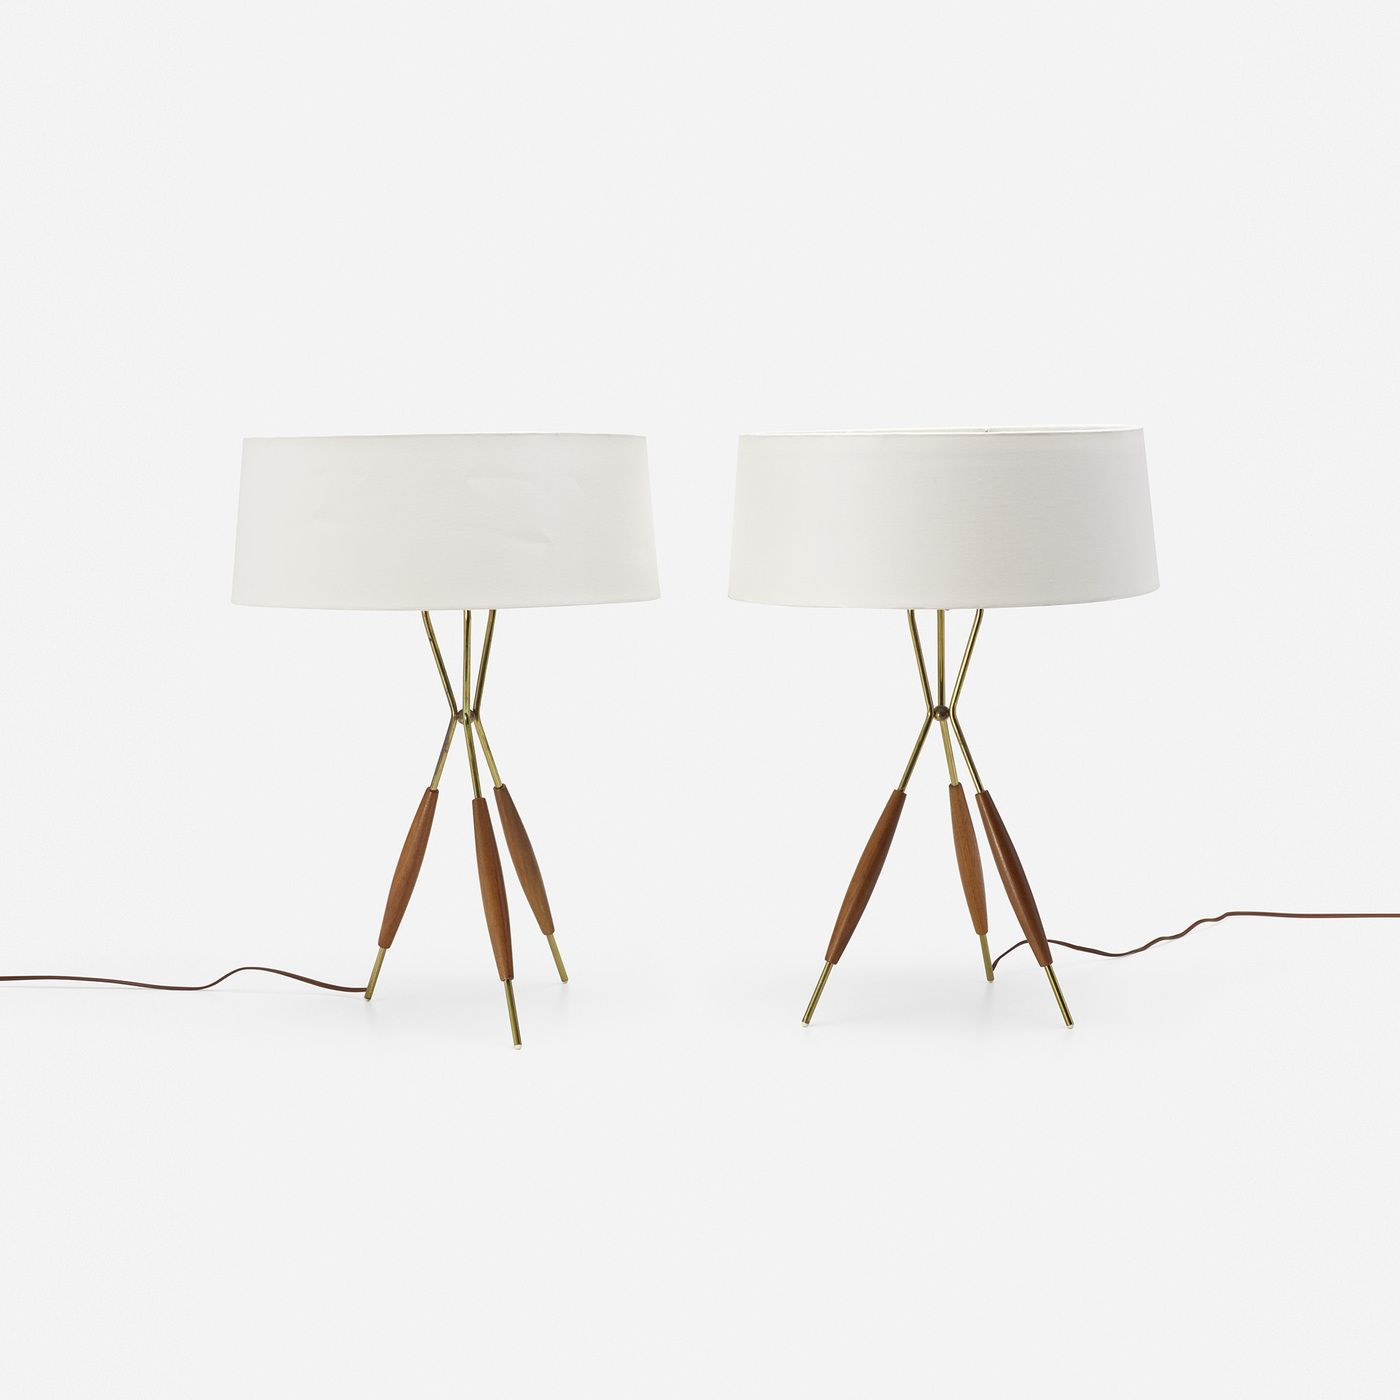 For sale on wright now gerald thurston table lamps pair for sale on wright now gerald thurston table lamps pair lightolier usa geotapseo Image collections